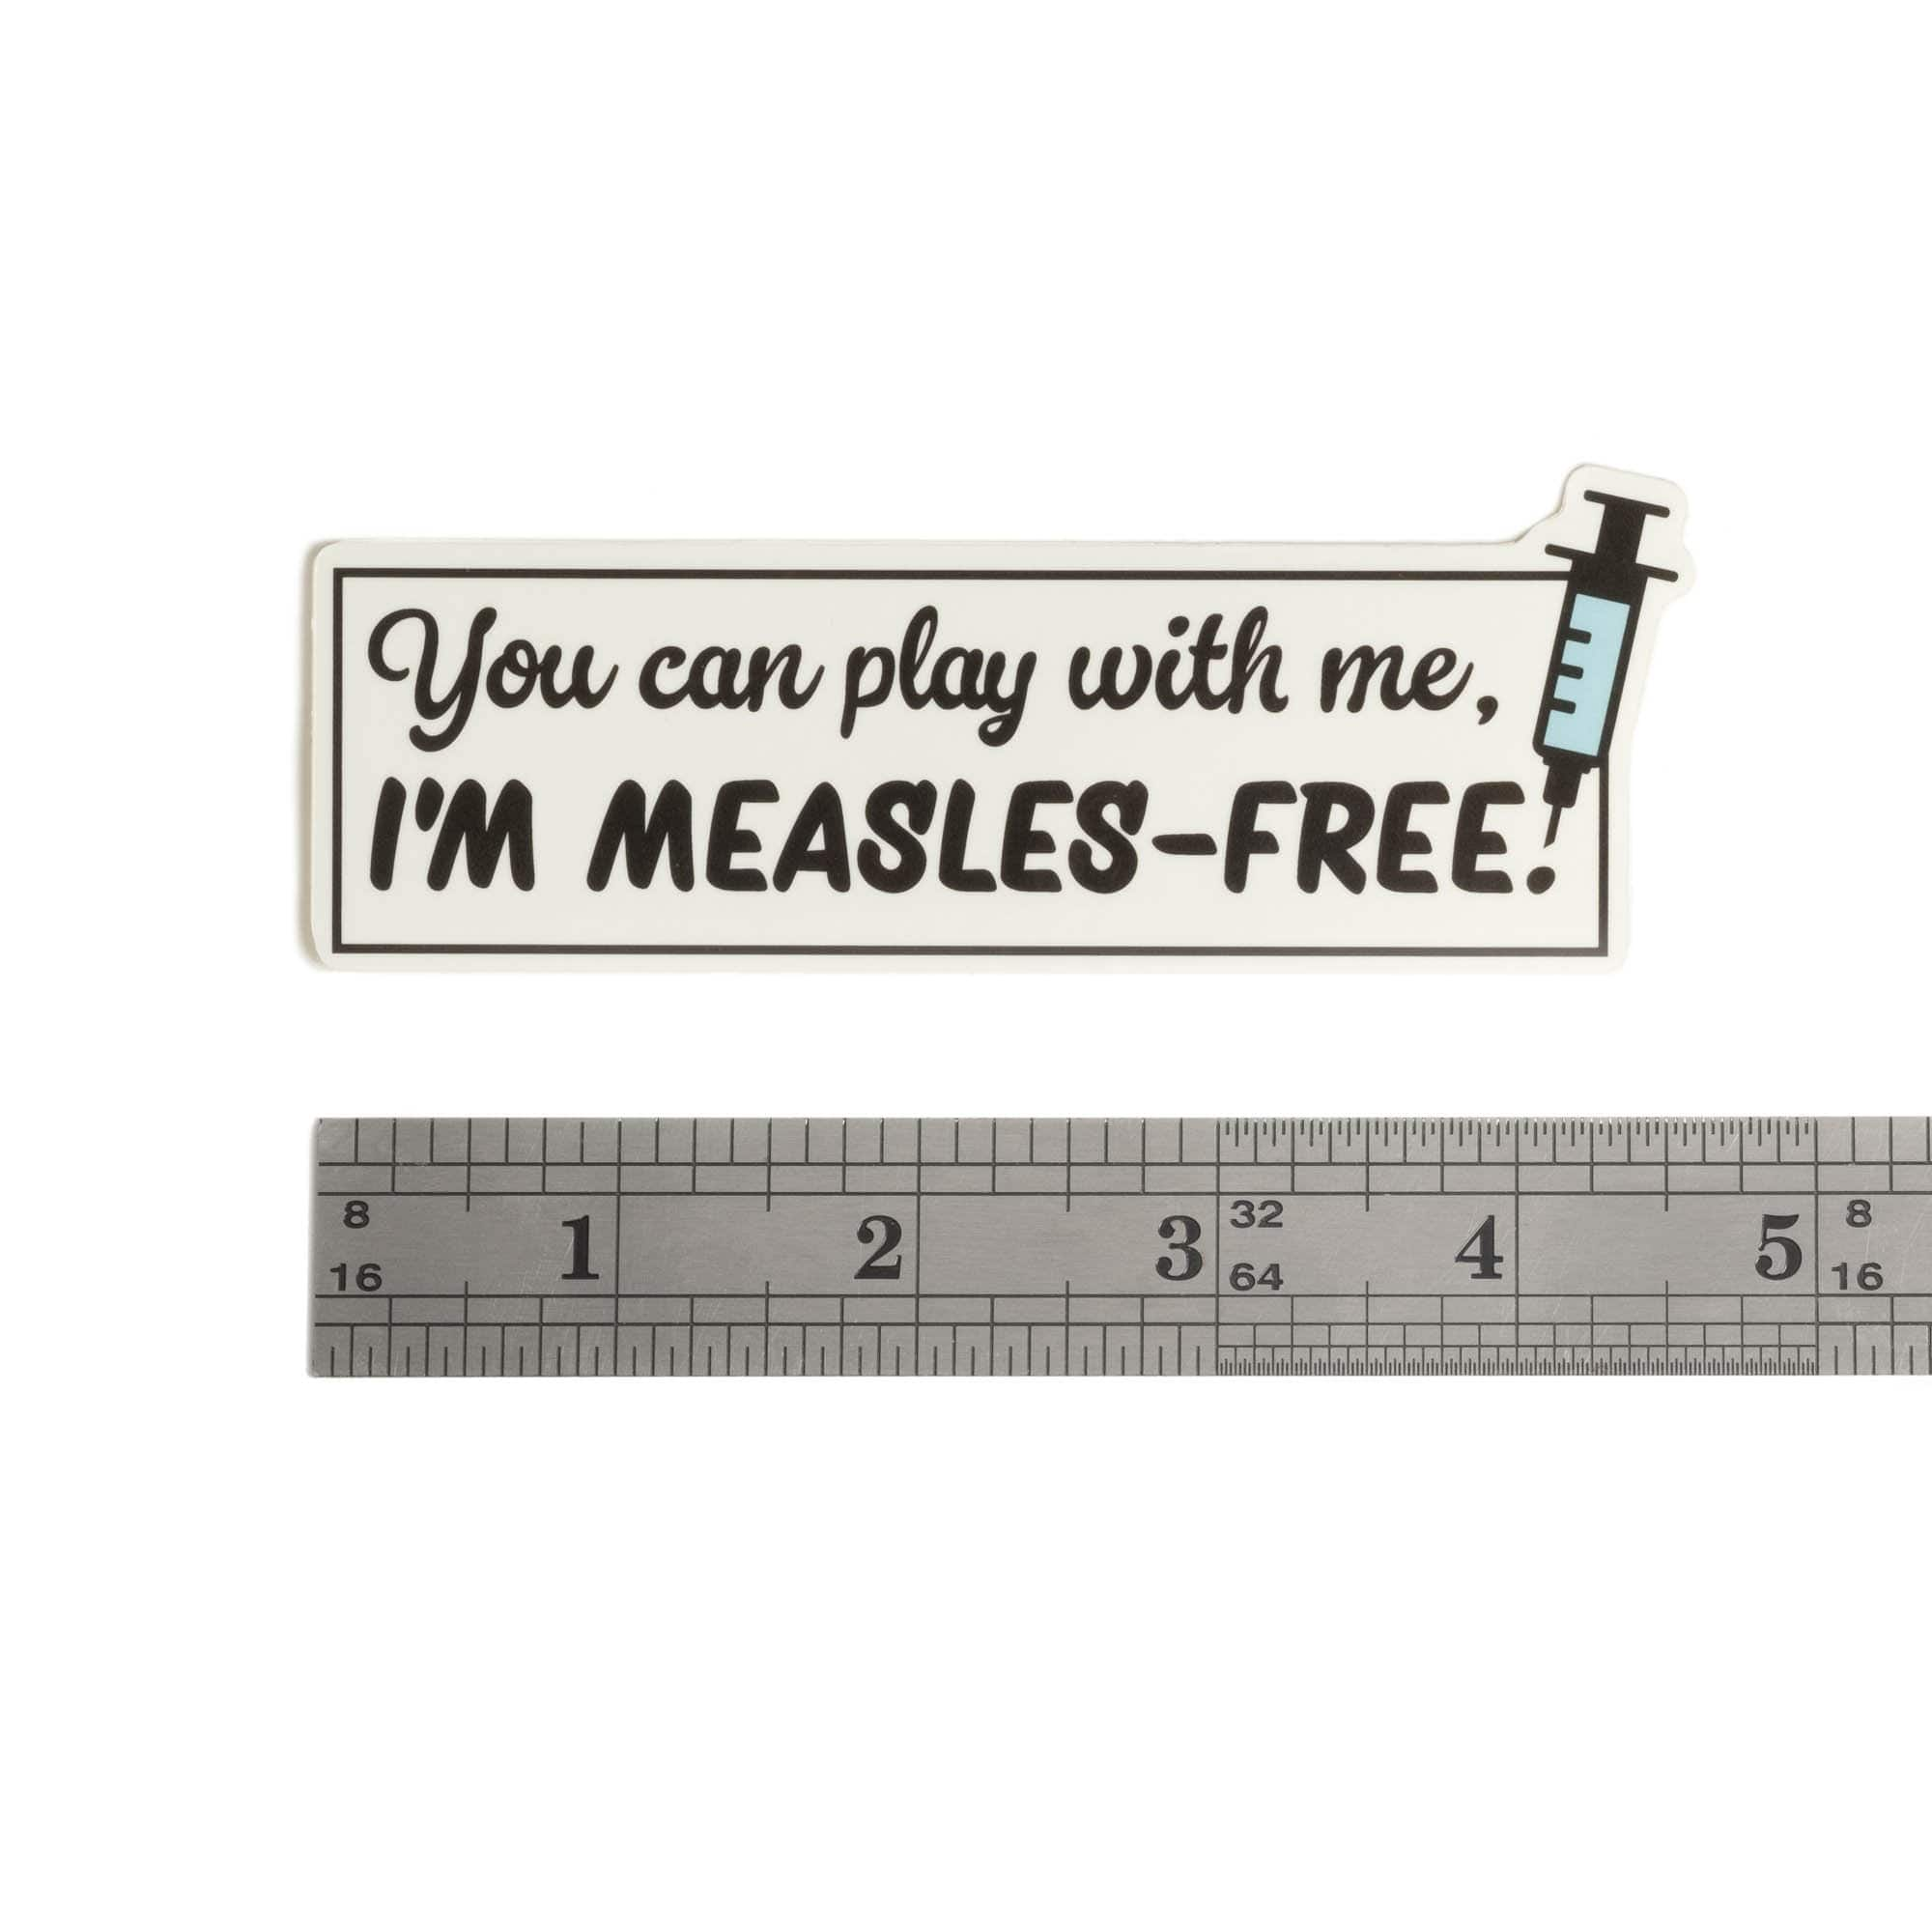 You can play with me, I'm measles-free Sticker